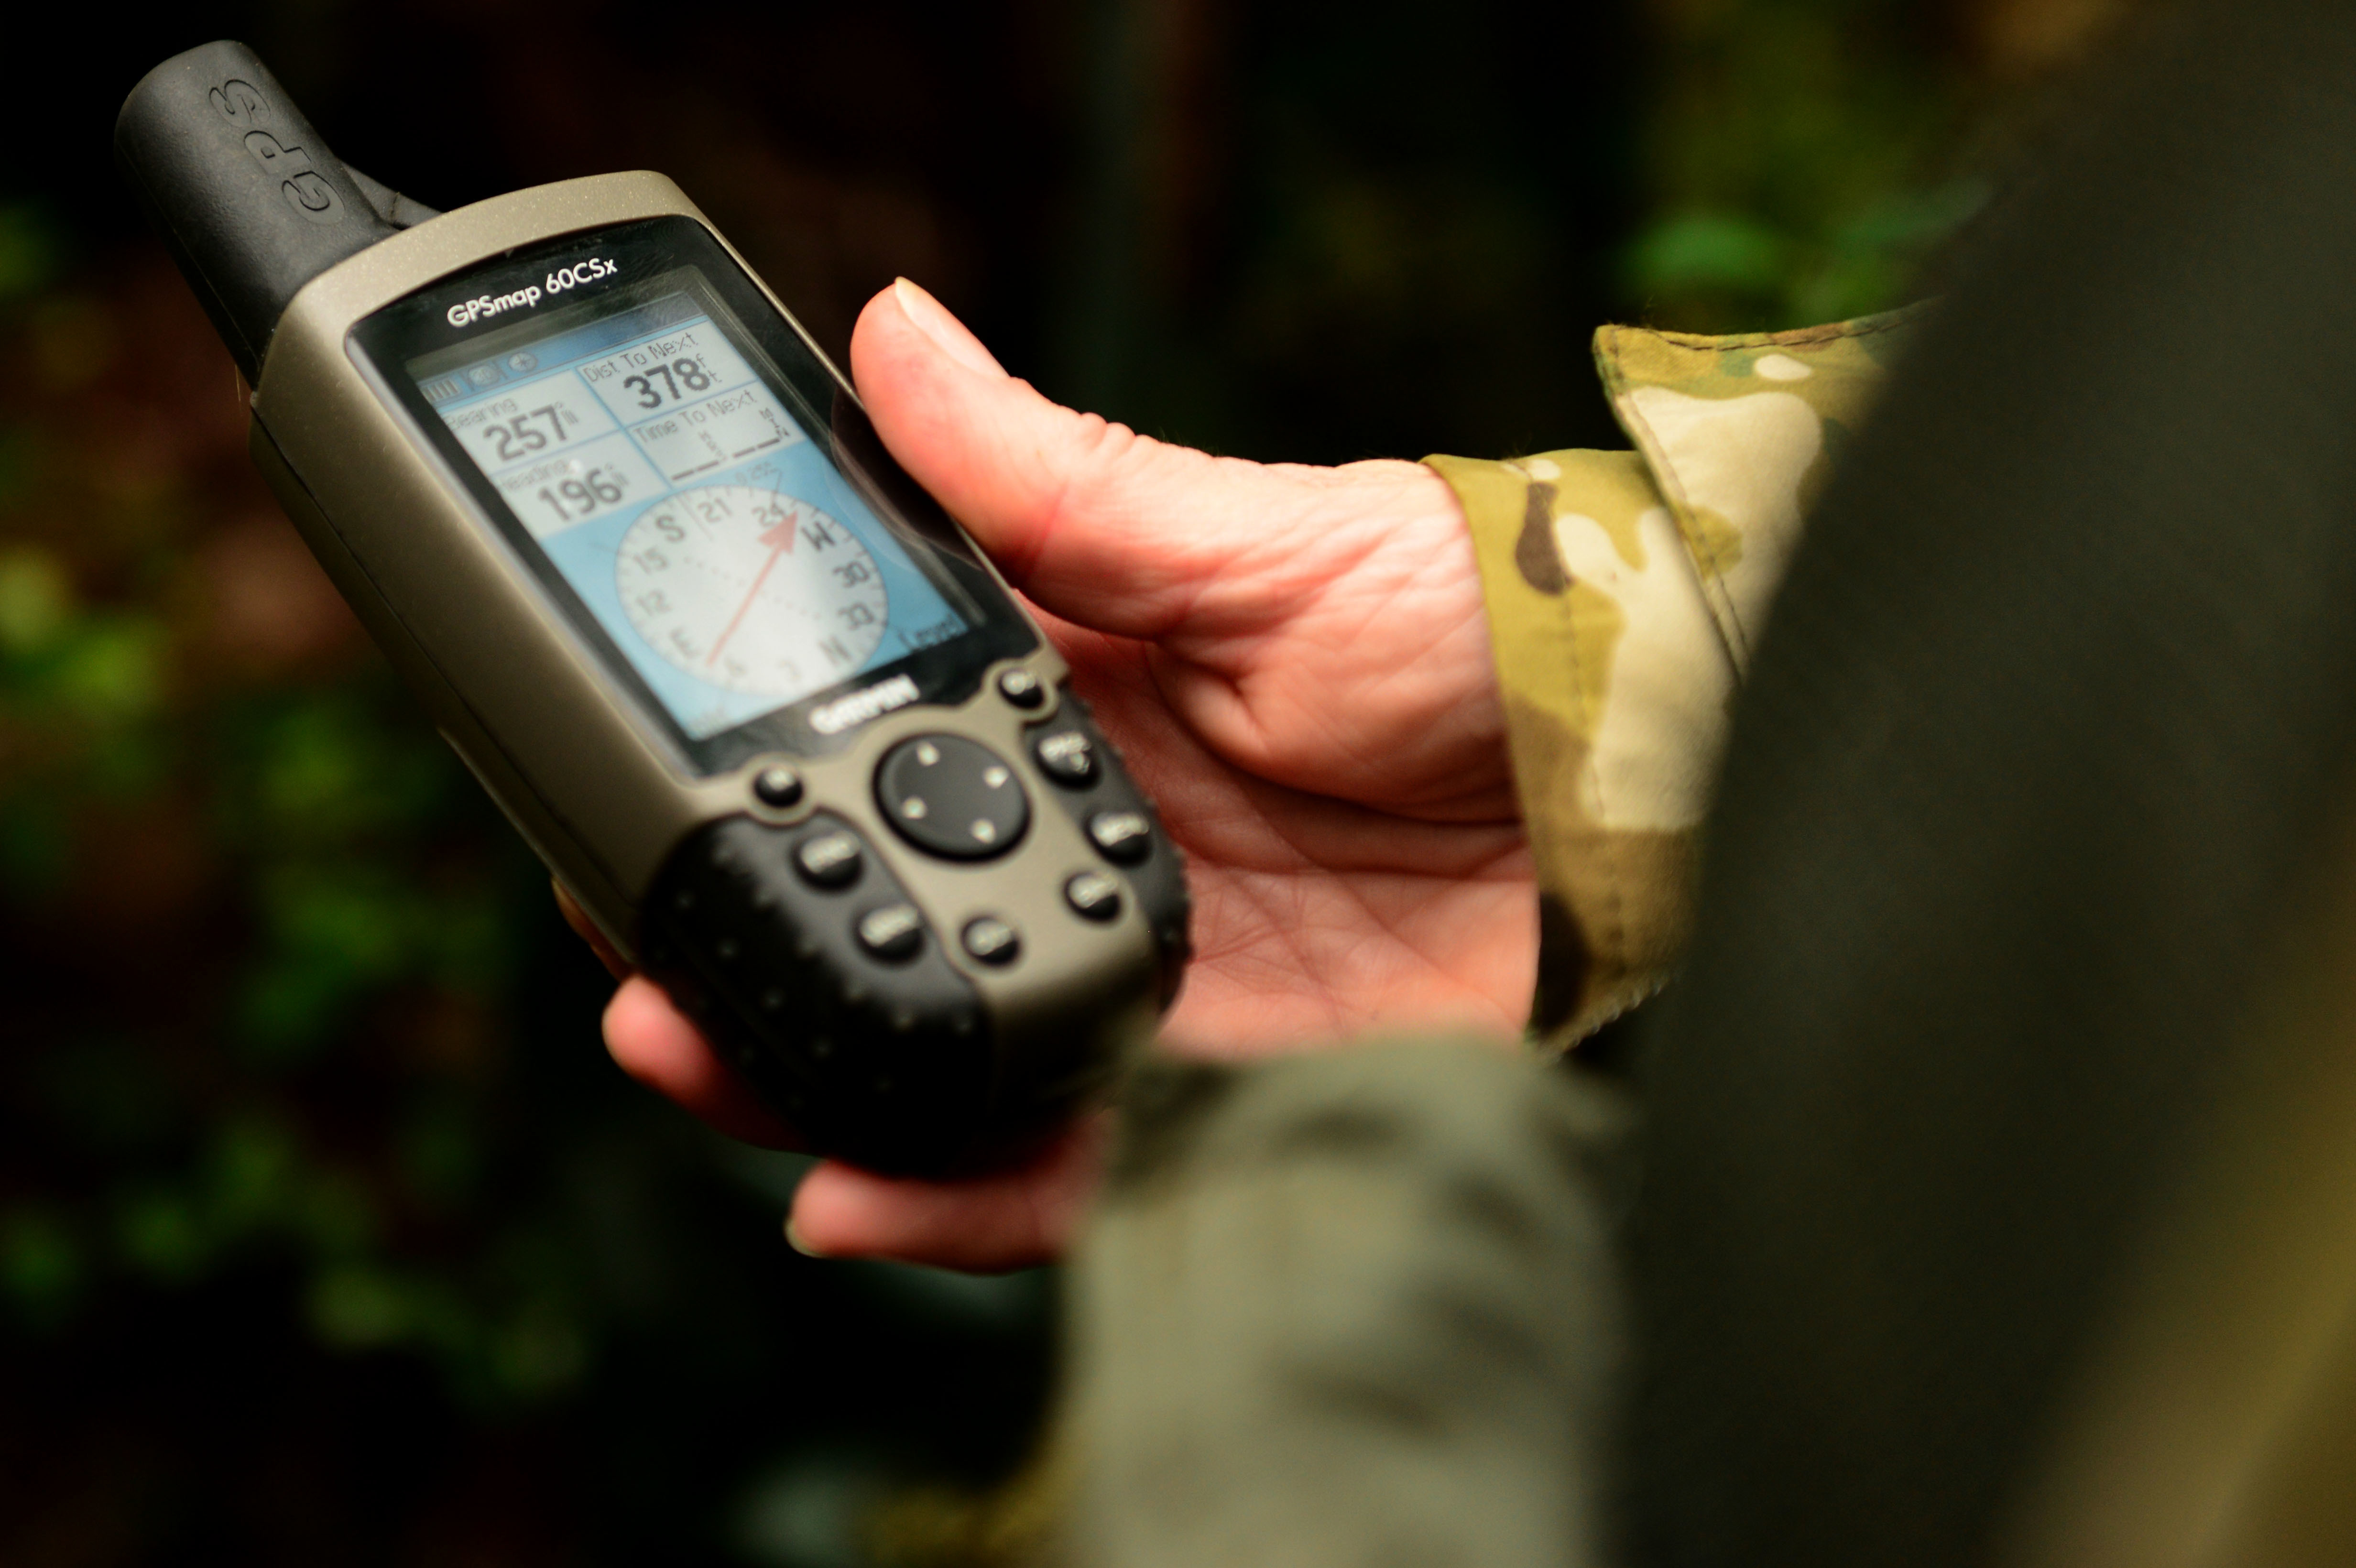 A U.S. airman uses a GPS to load coordinates at Langley Air Force Base, Va., on Nov. 19, 2015. Being able to use various types of technology during survival courses ensures airmen are prepared in the event of being stranded in the wilderness. (Airman 1st Class Derek Seifert/Air Force)